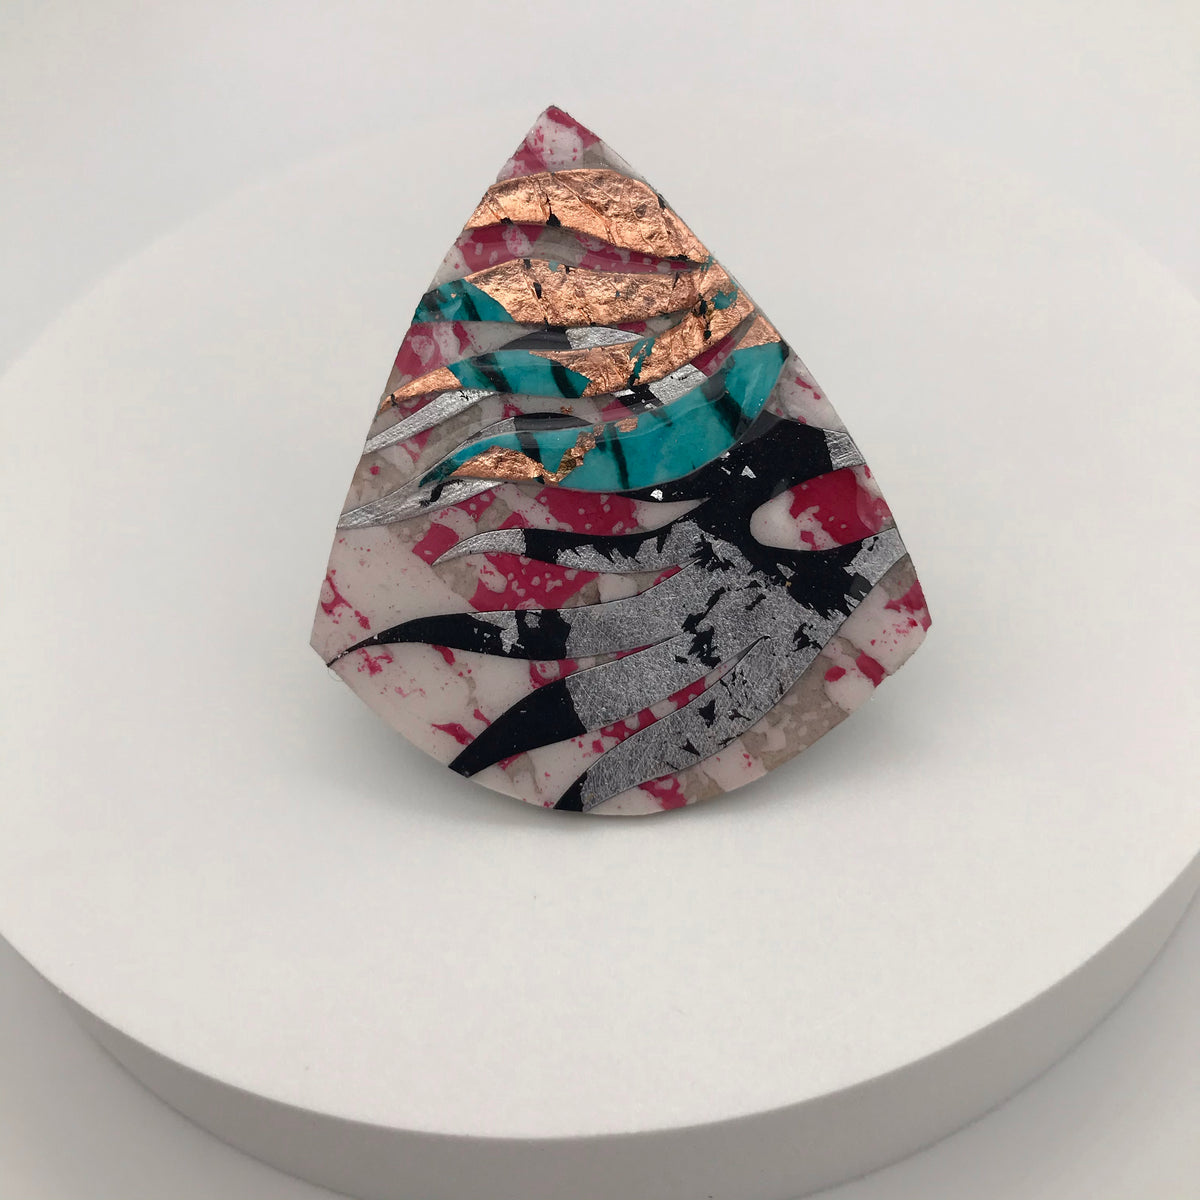 Díog pink/black/silver/turquoise/rose-gold ring